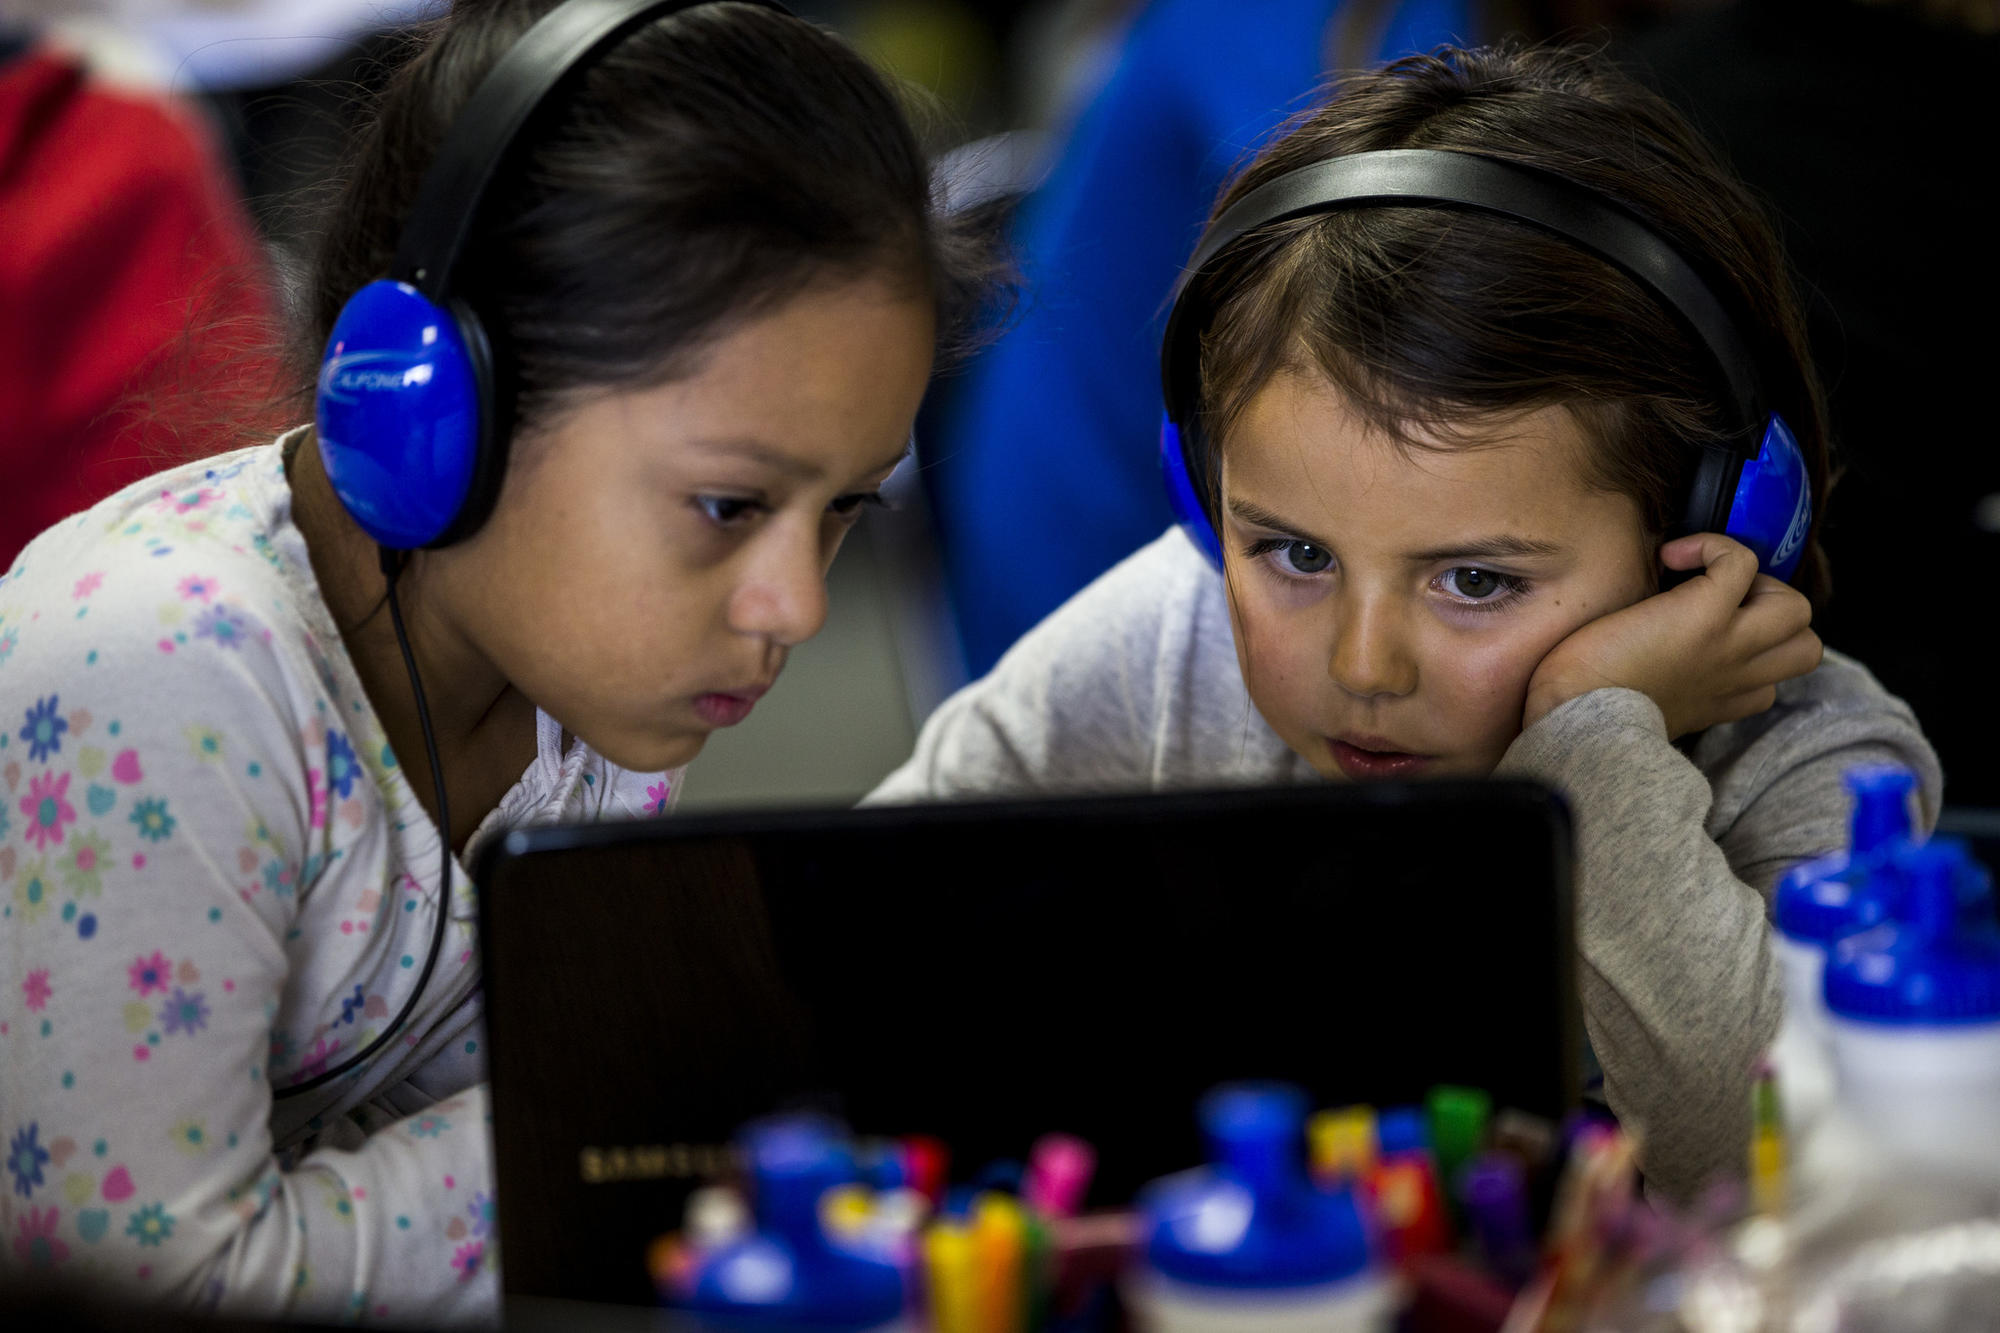 Esperanza Hernandez, left, and Teagan Garcia use Chromebooks in Joanie Bryant's class at Waggoner Elementary School in Winters. (Kent Nishimura / Los Angeles Times)